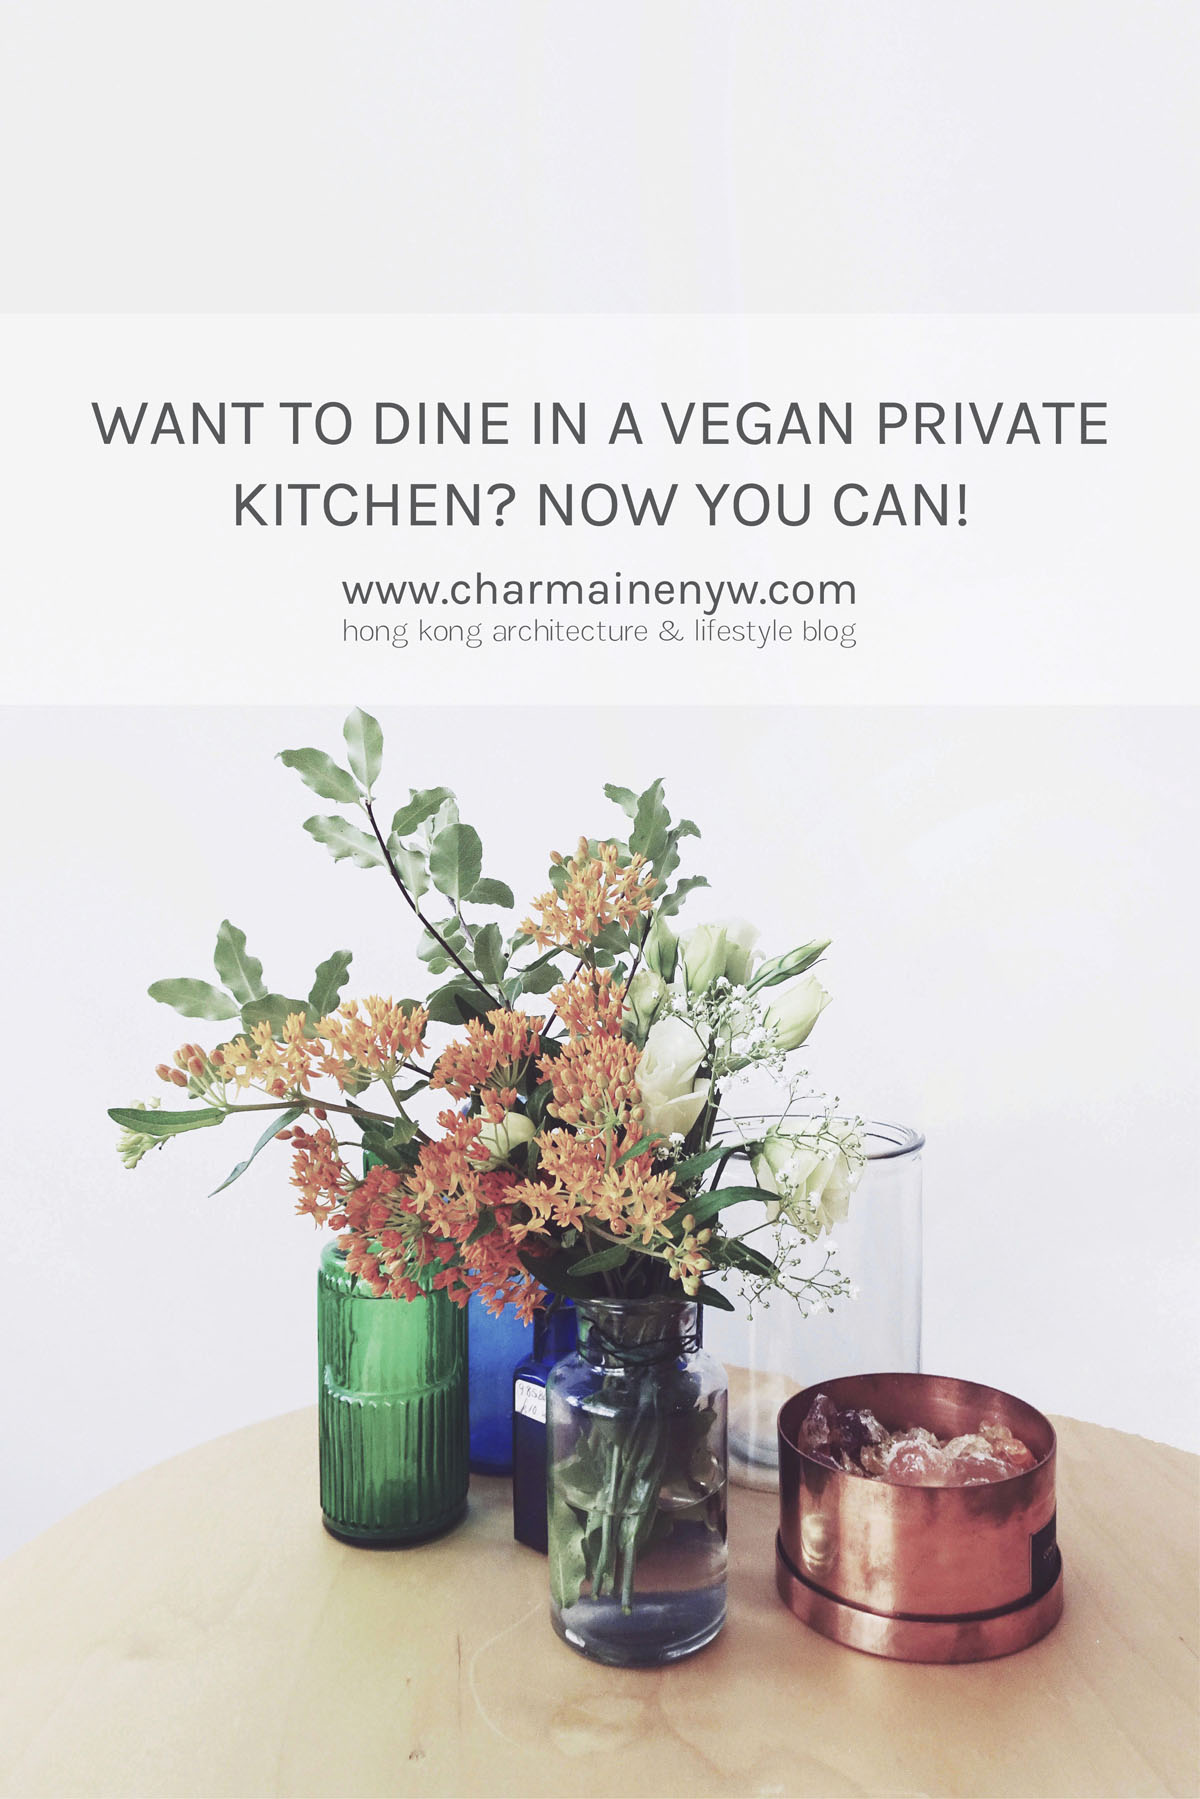 Sow Vegan pop-up open house in Kwun Tong, Hong Kong